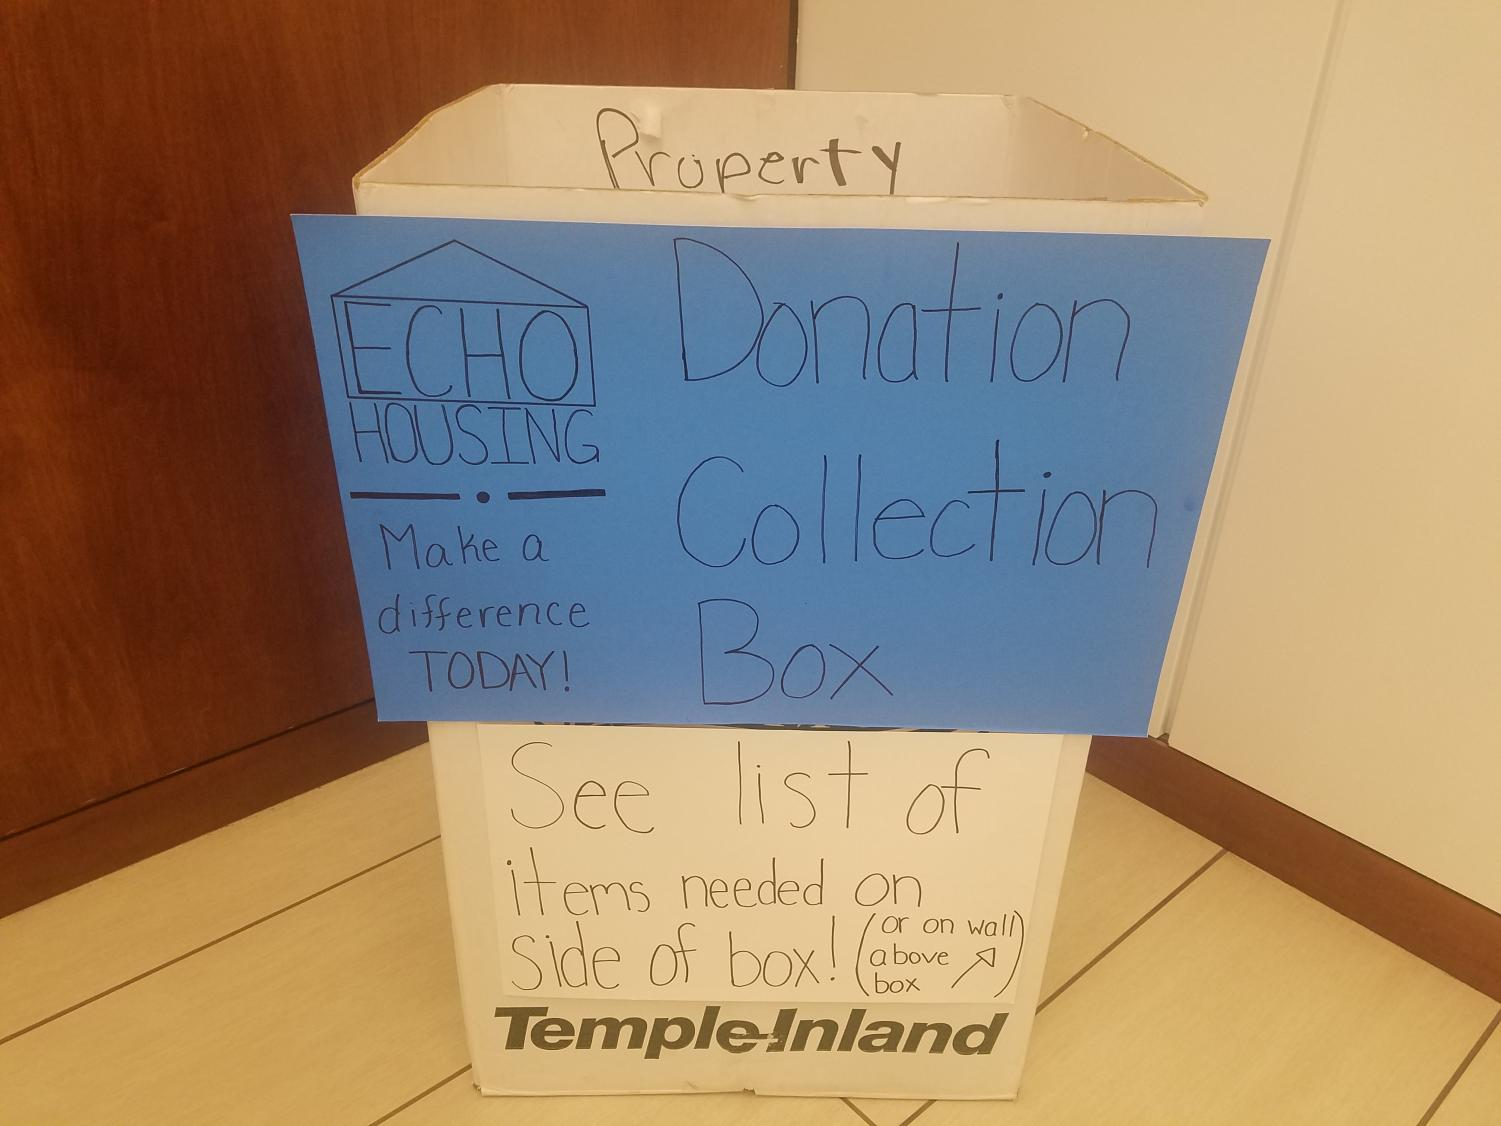 Items will be collected for ECHO Housing Corporation in this box outside the Social Work Department.